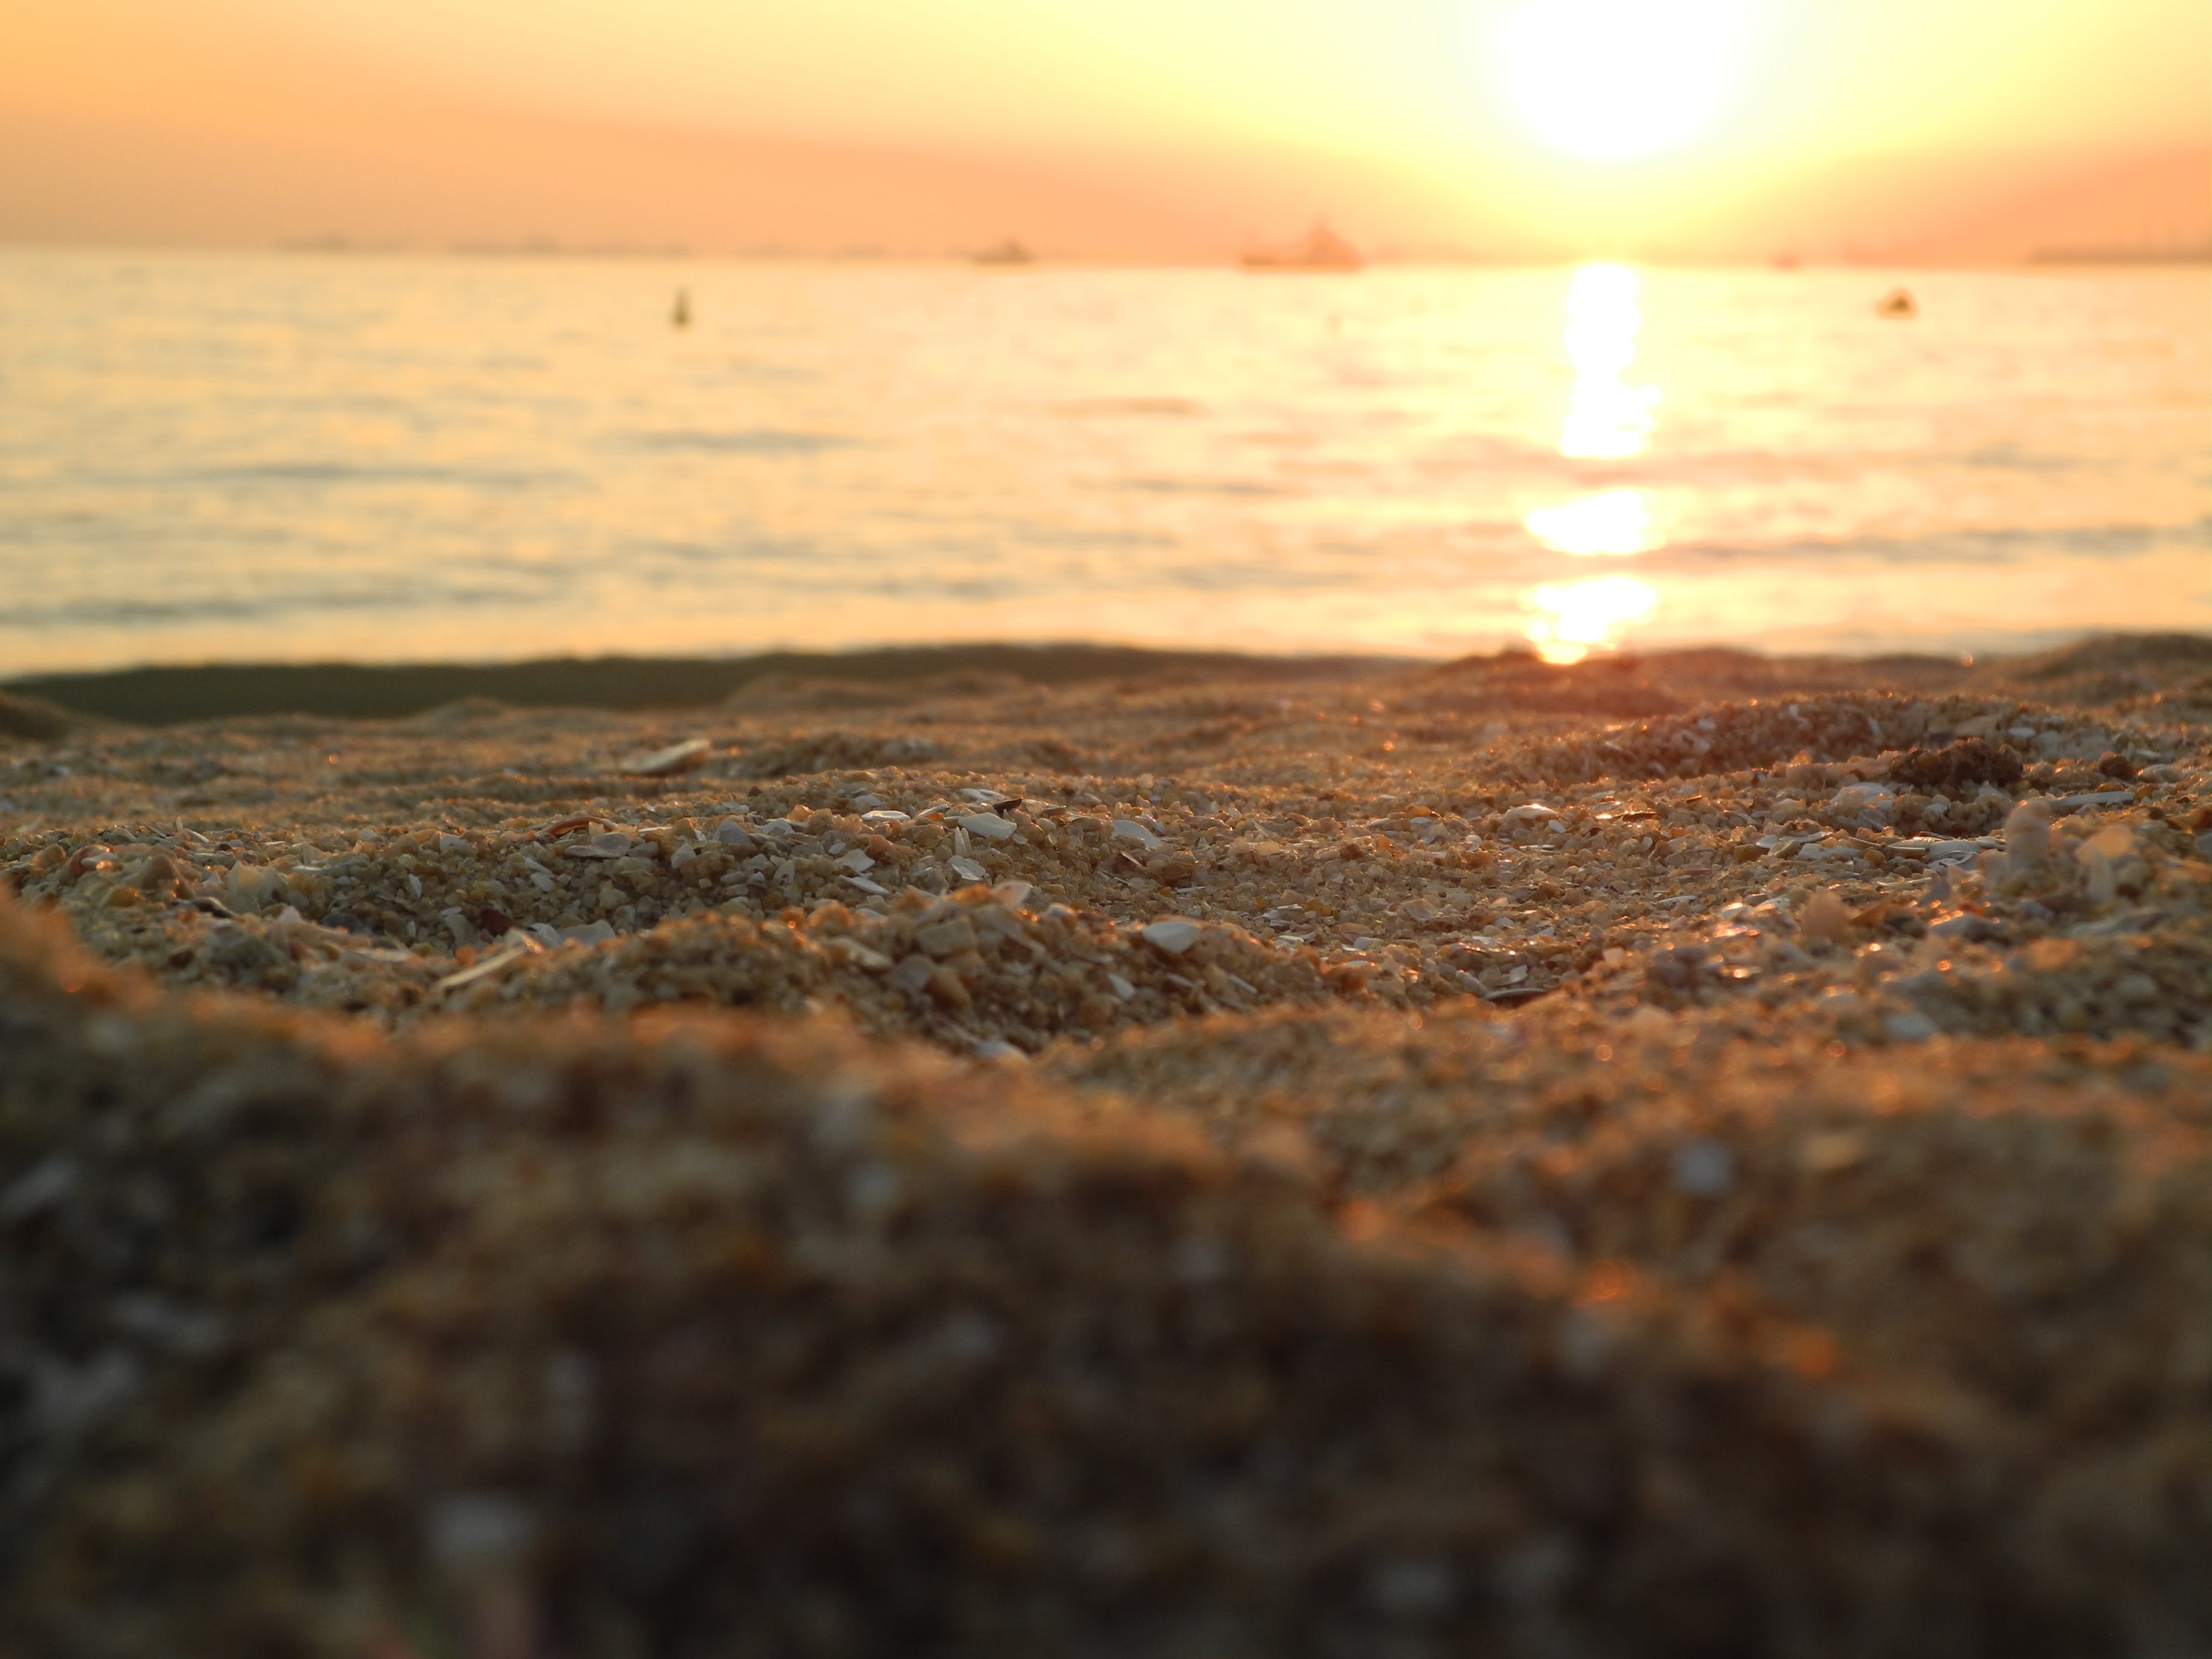 Free stock photo of sunset, beach, sand